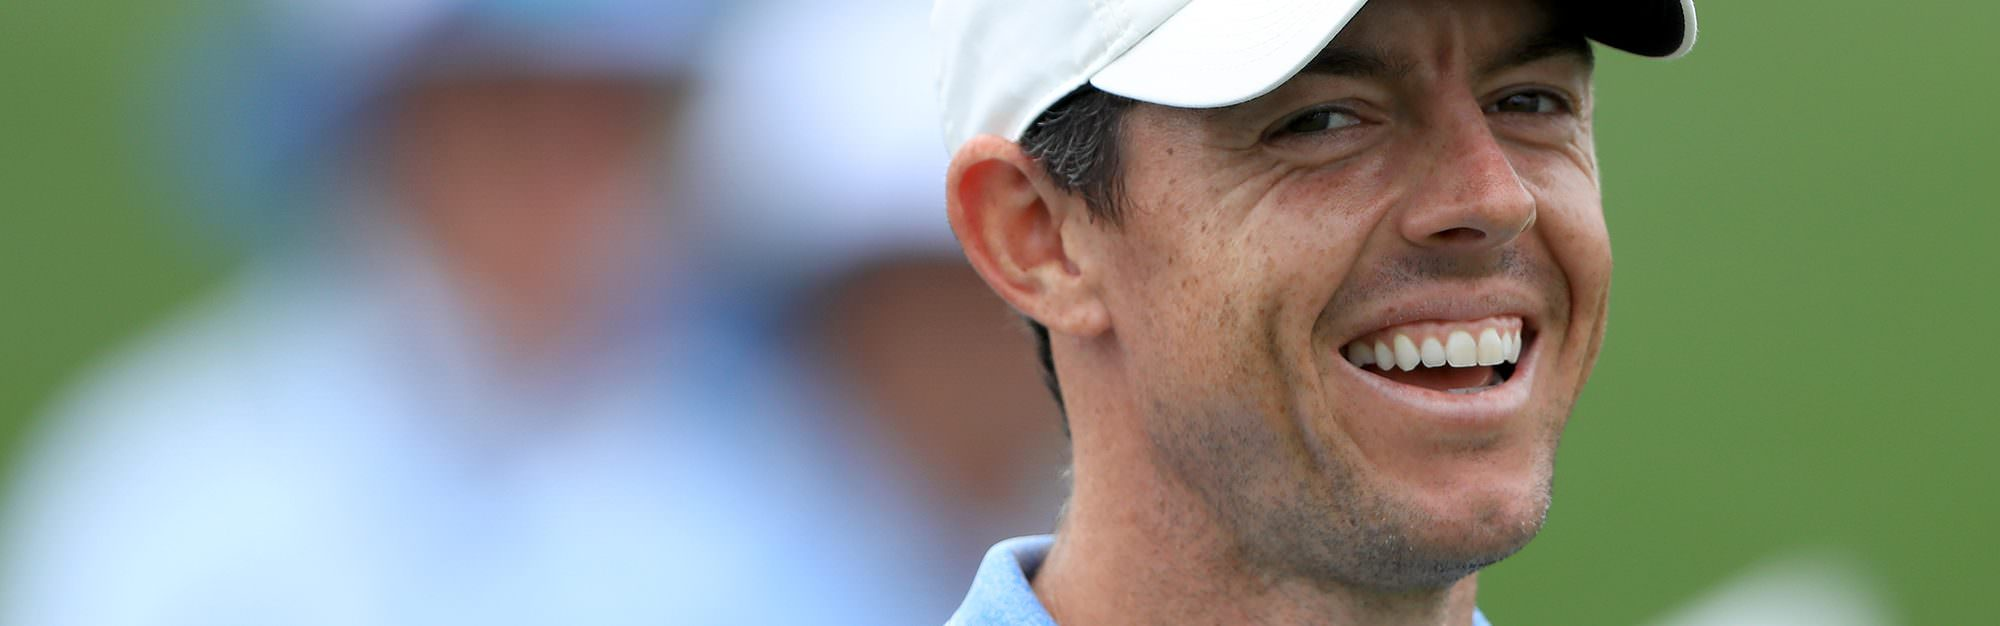 The final coming of age: How Rory became the voice of golf